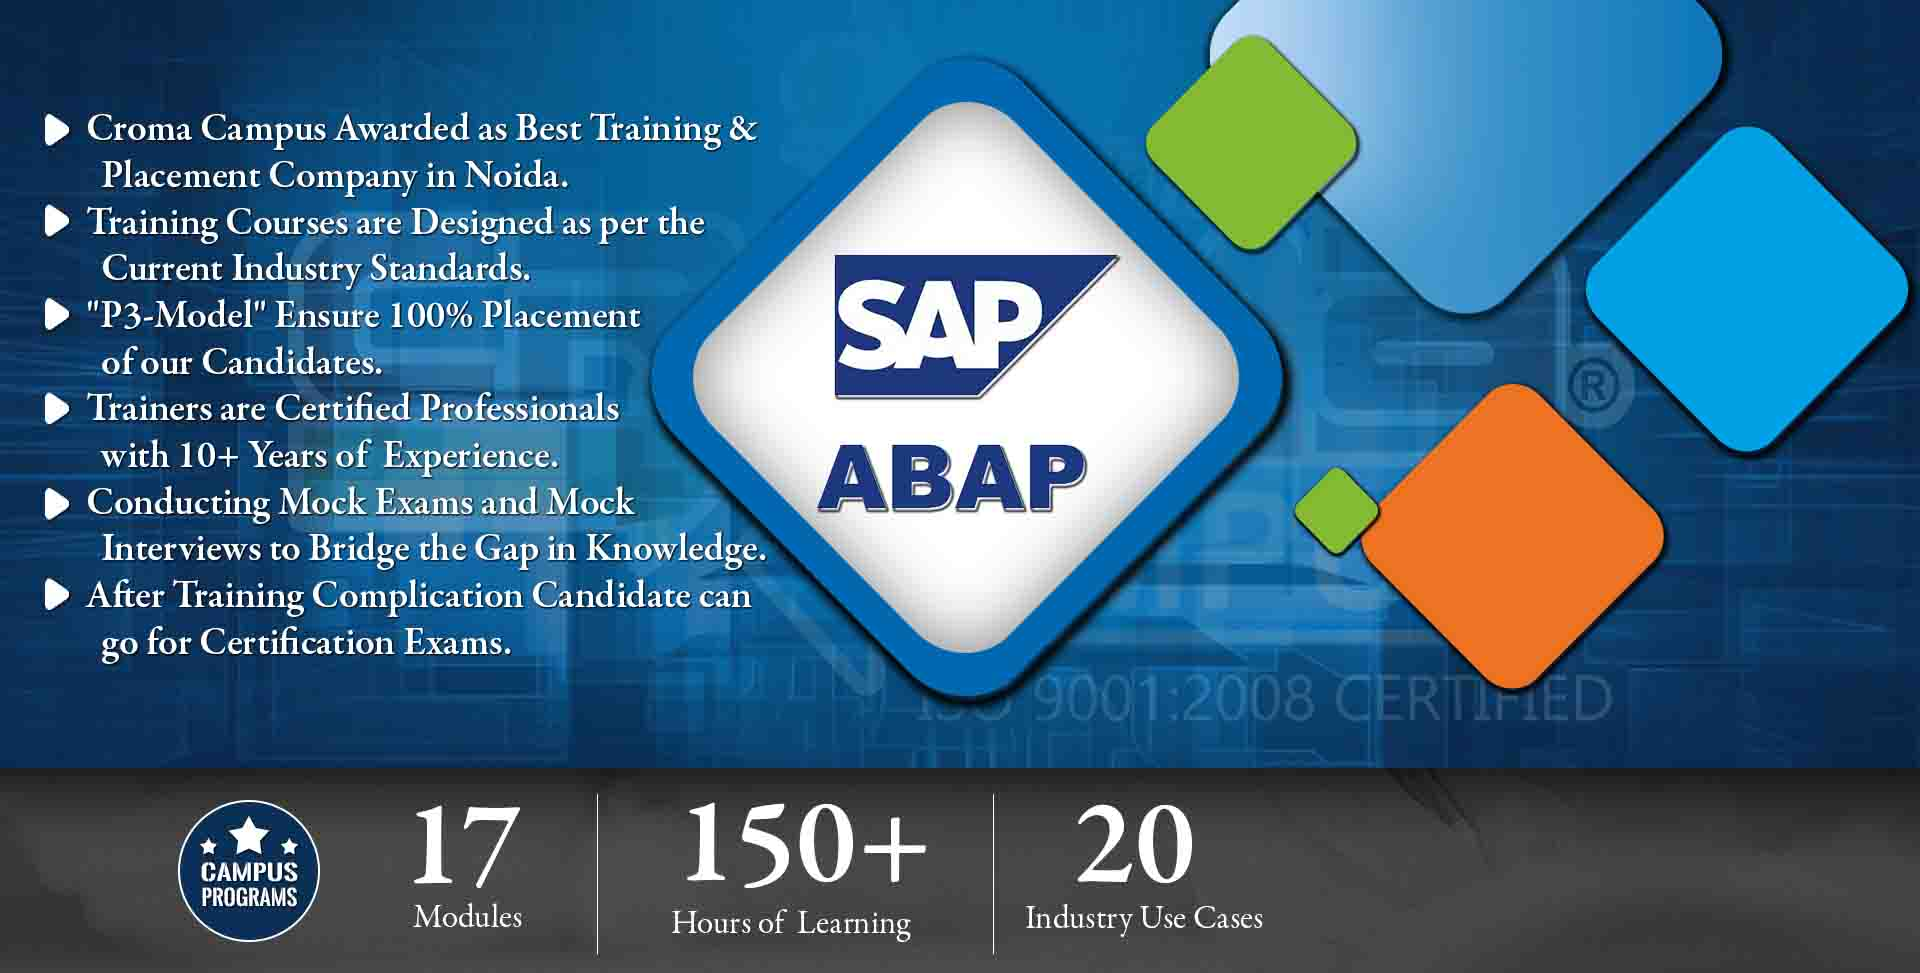 SAP ABAP Training in Noida- Croma Campus